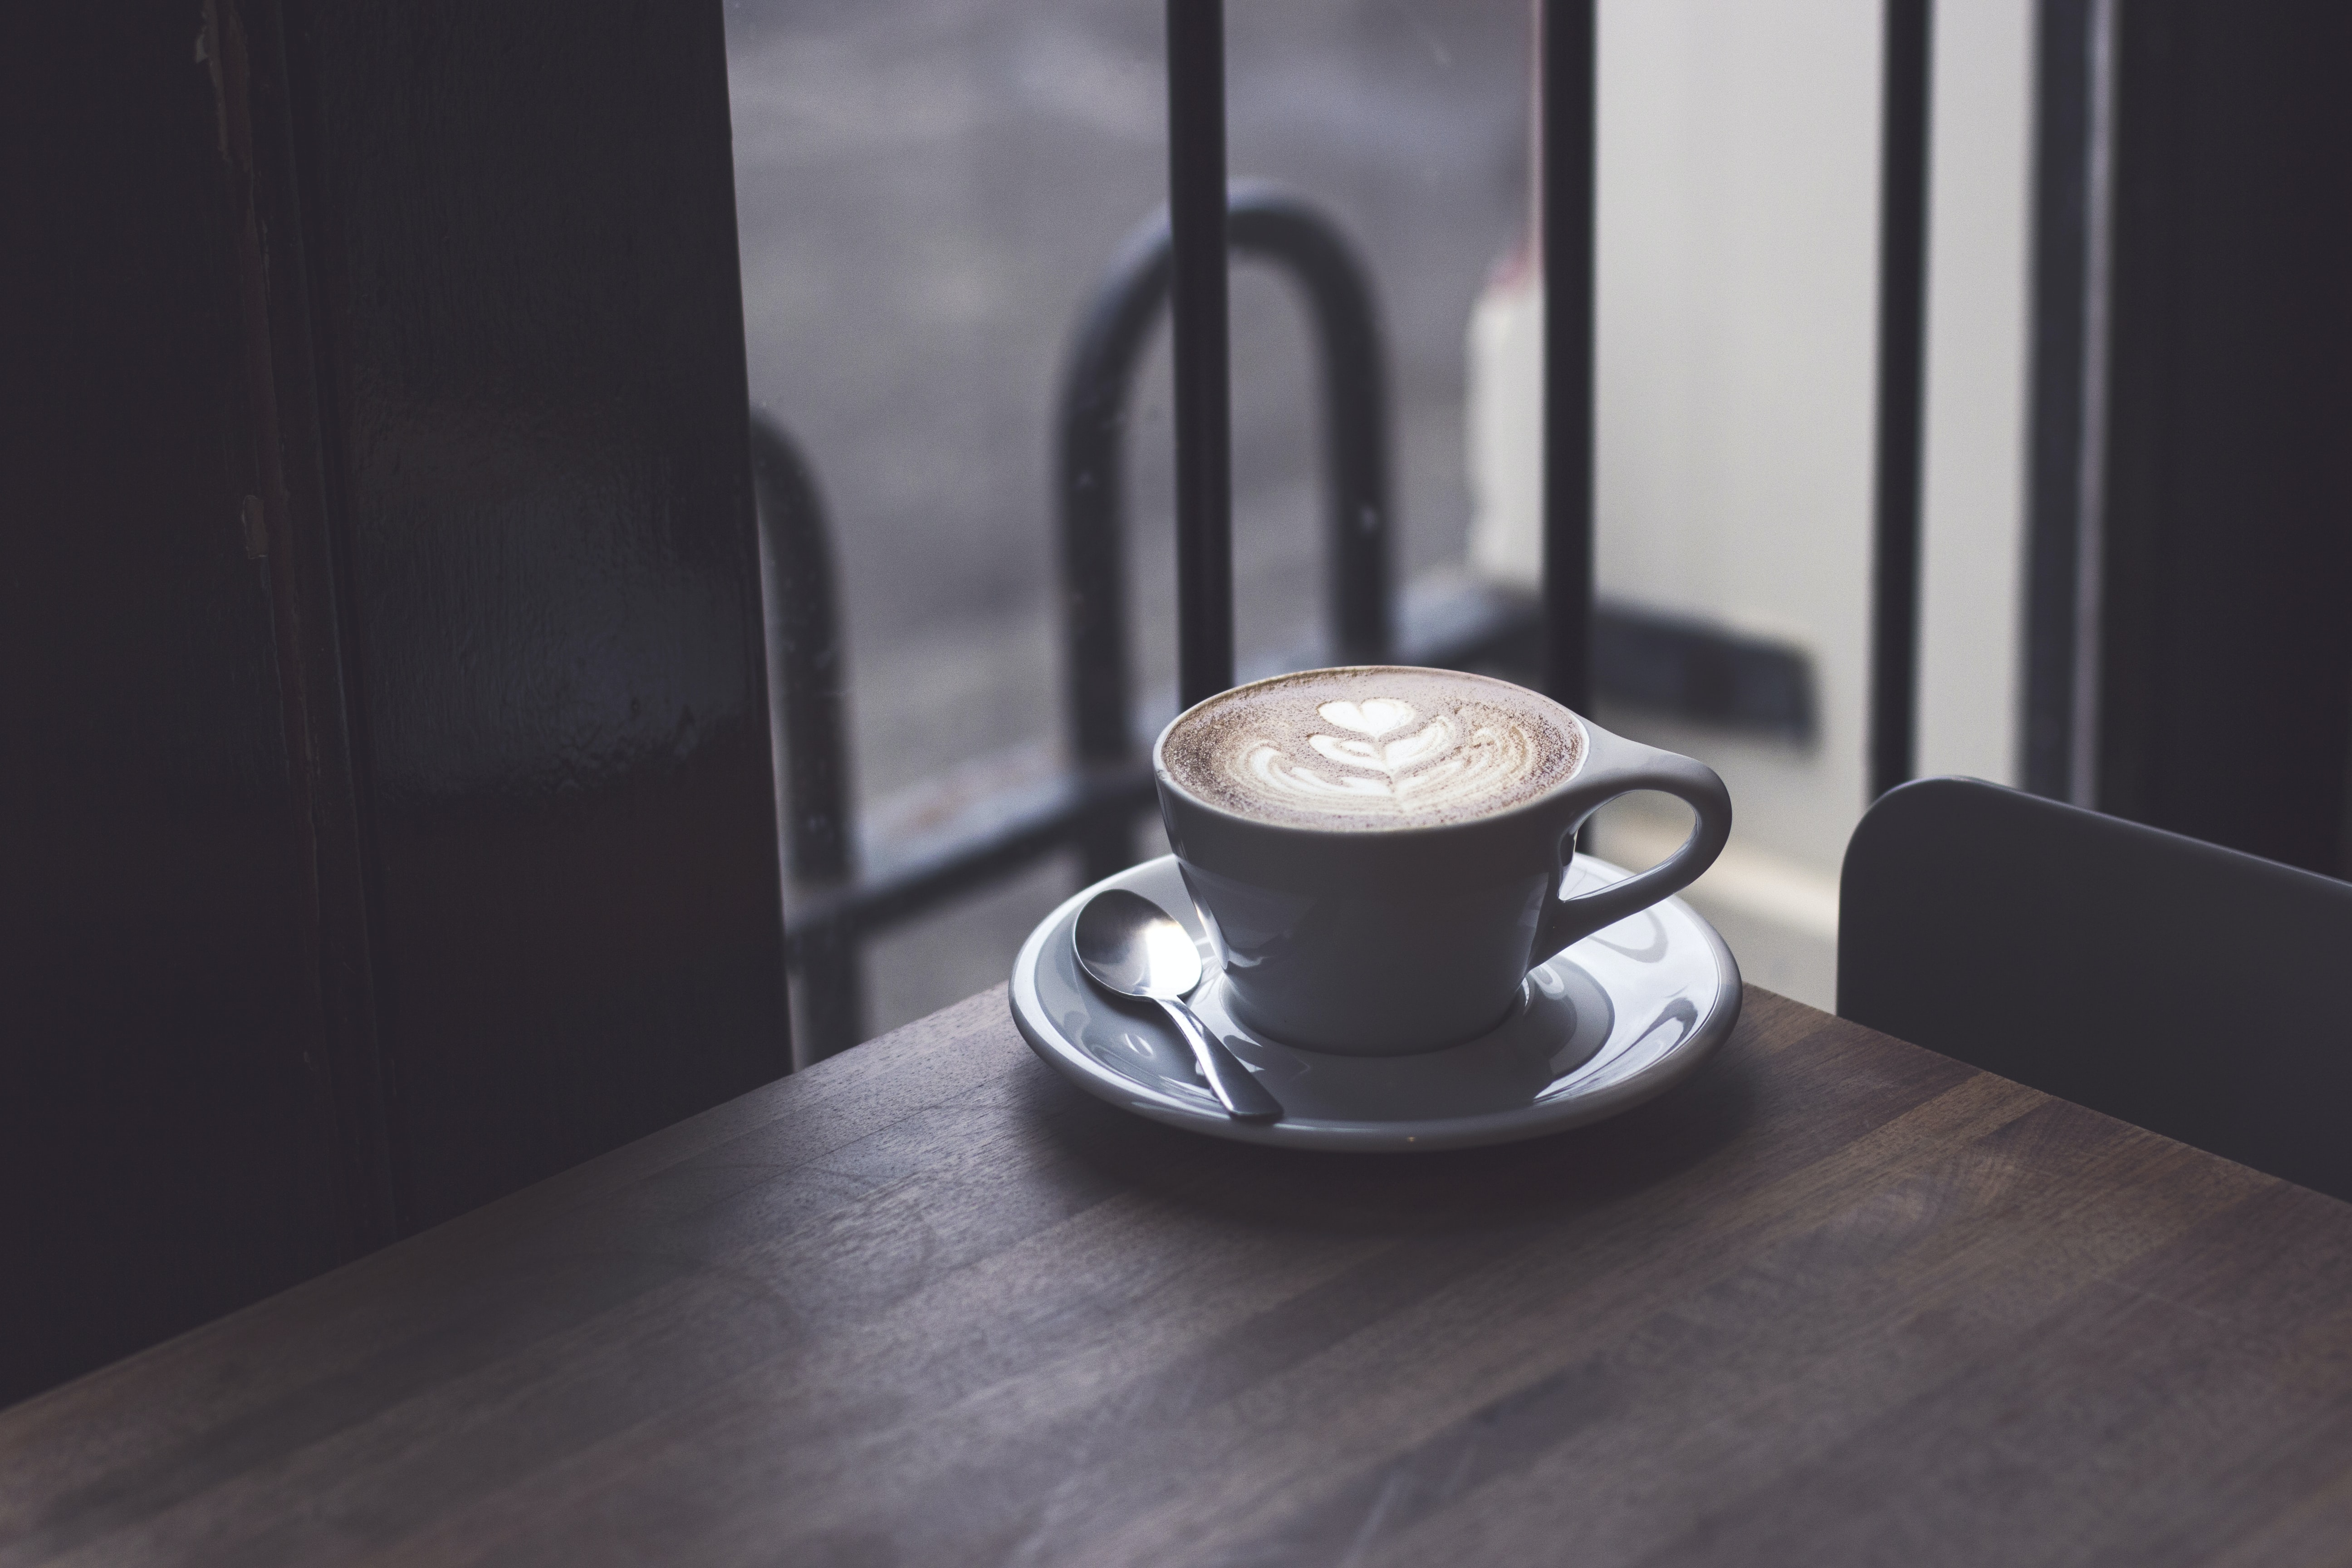 Cup of espresso on a plate on the corner of a brown, wood table in front of a glass window